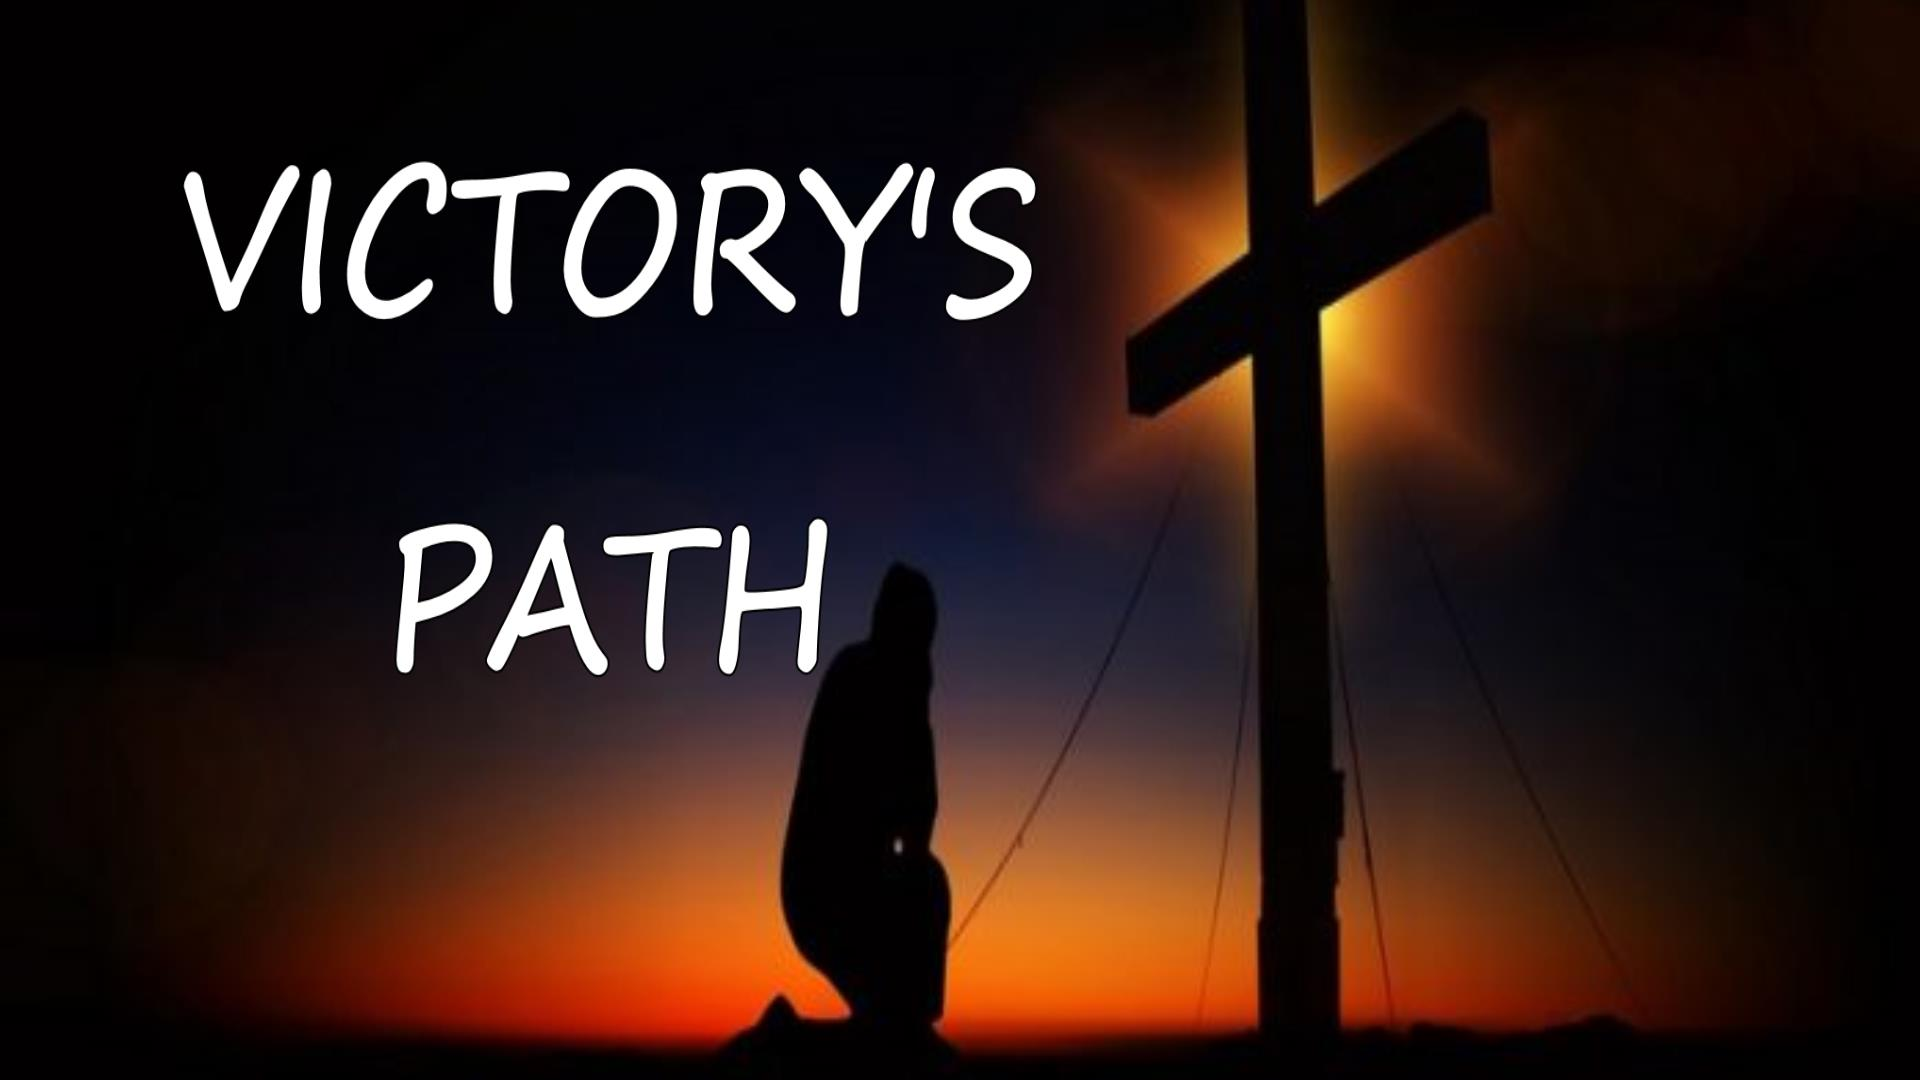 Victory's Path